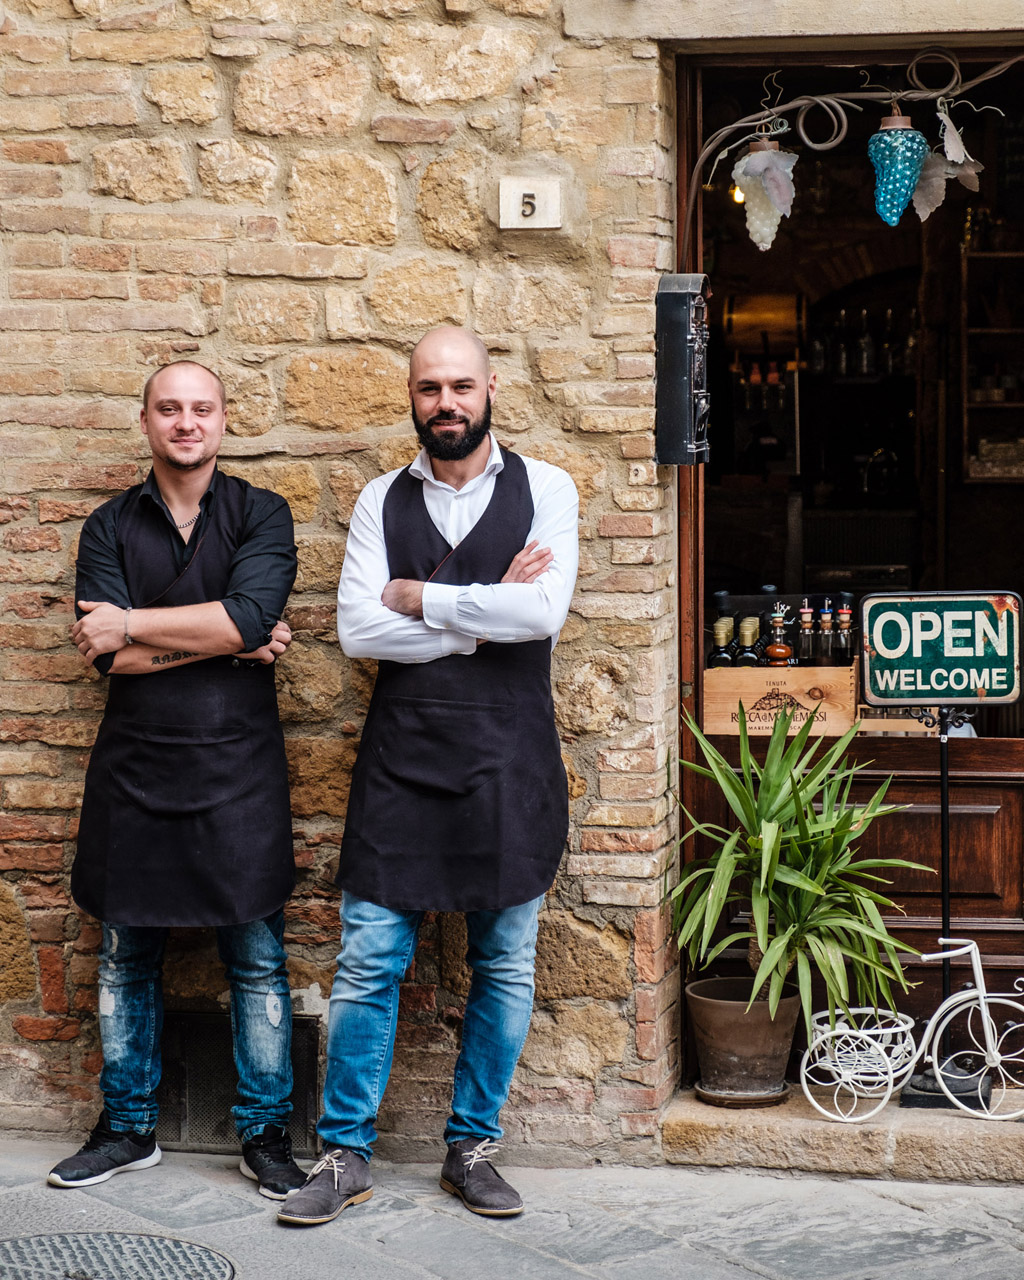 Photographing Tuscany - Waiters at a restaurant in Pienza